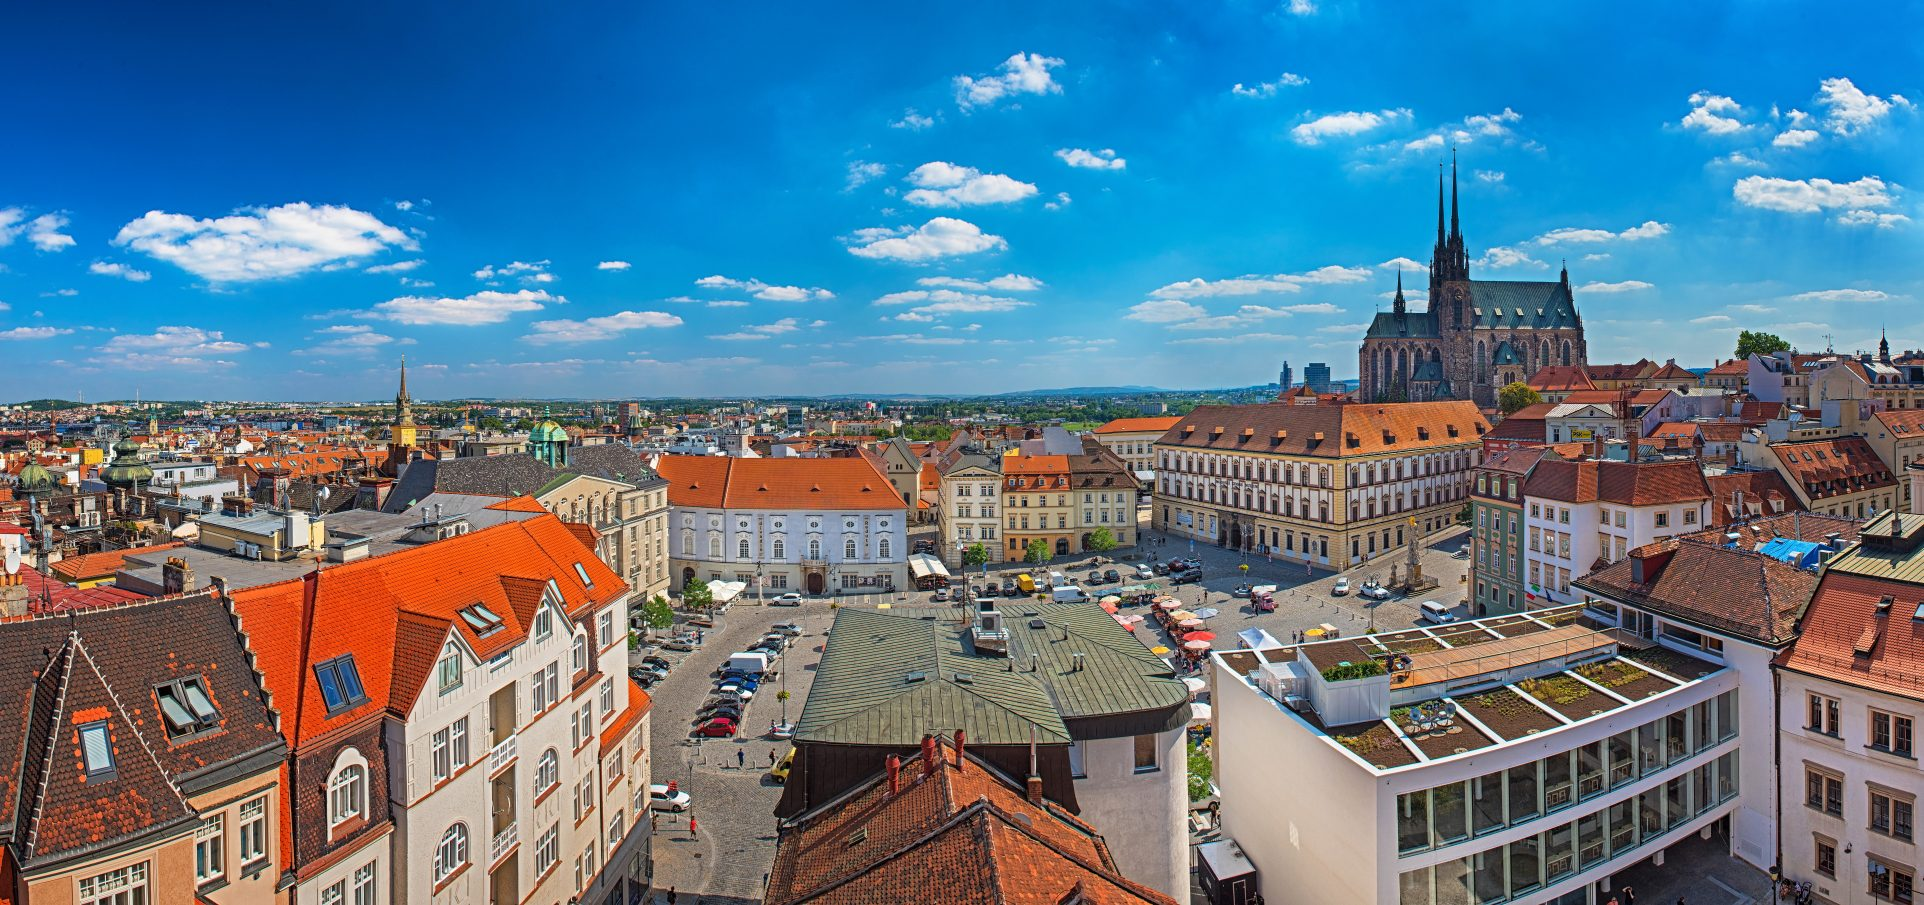 Brno, Czech Republic, city, architecture, transfer, private tour